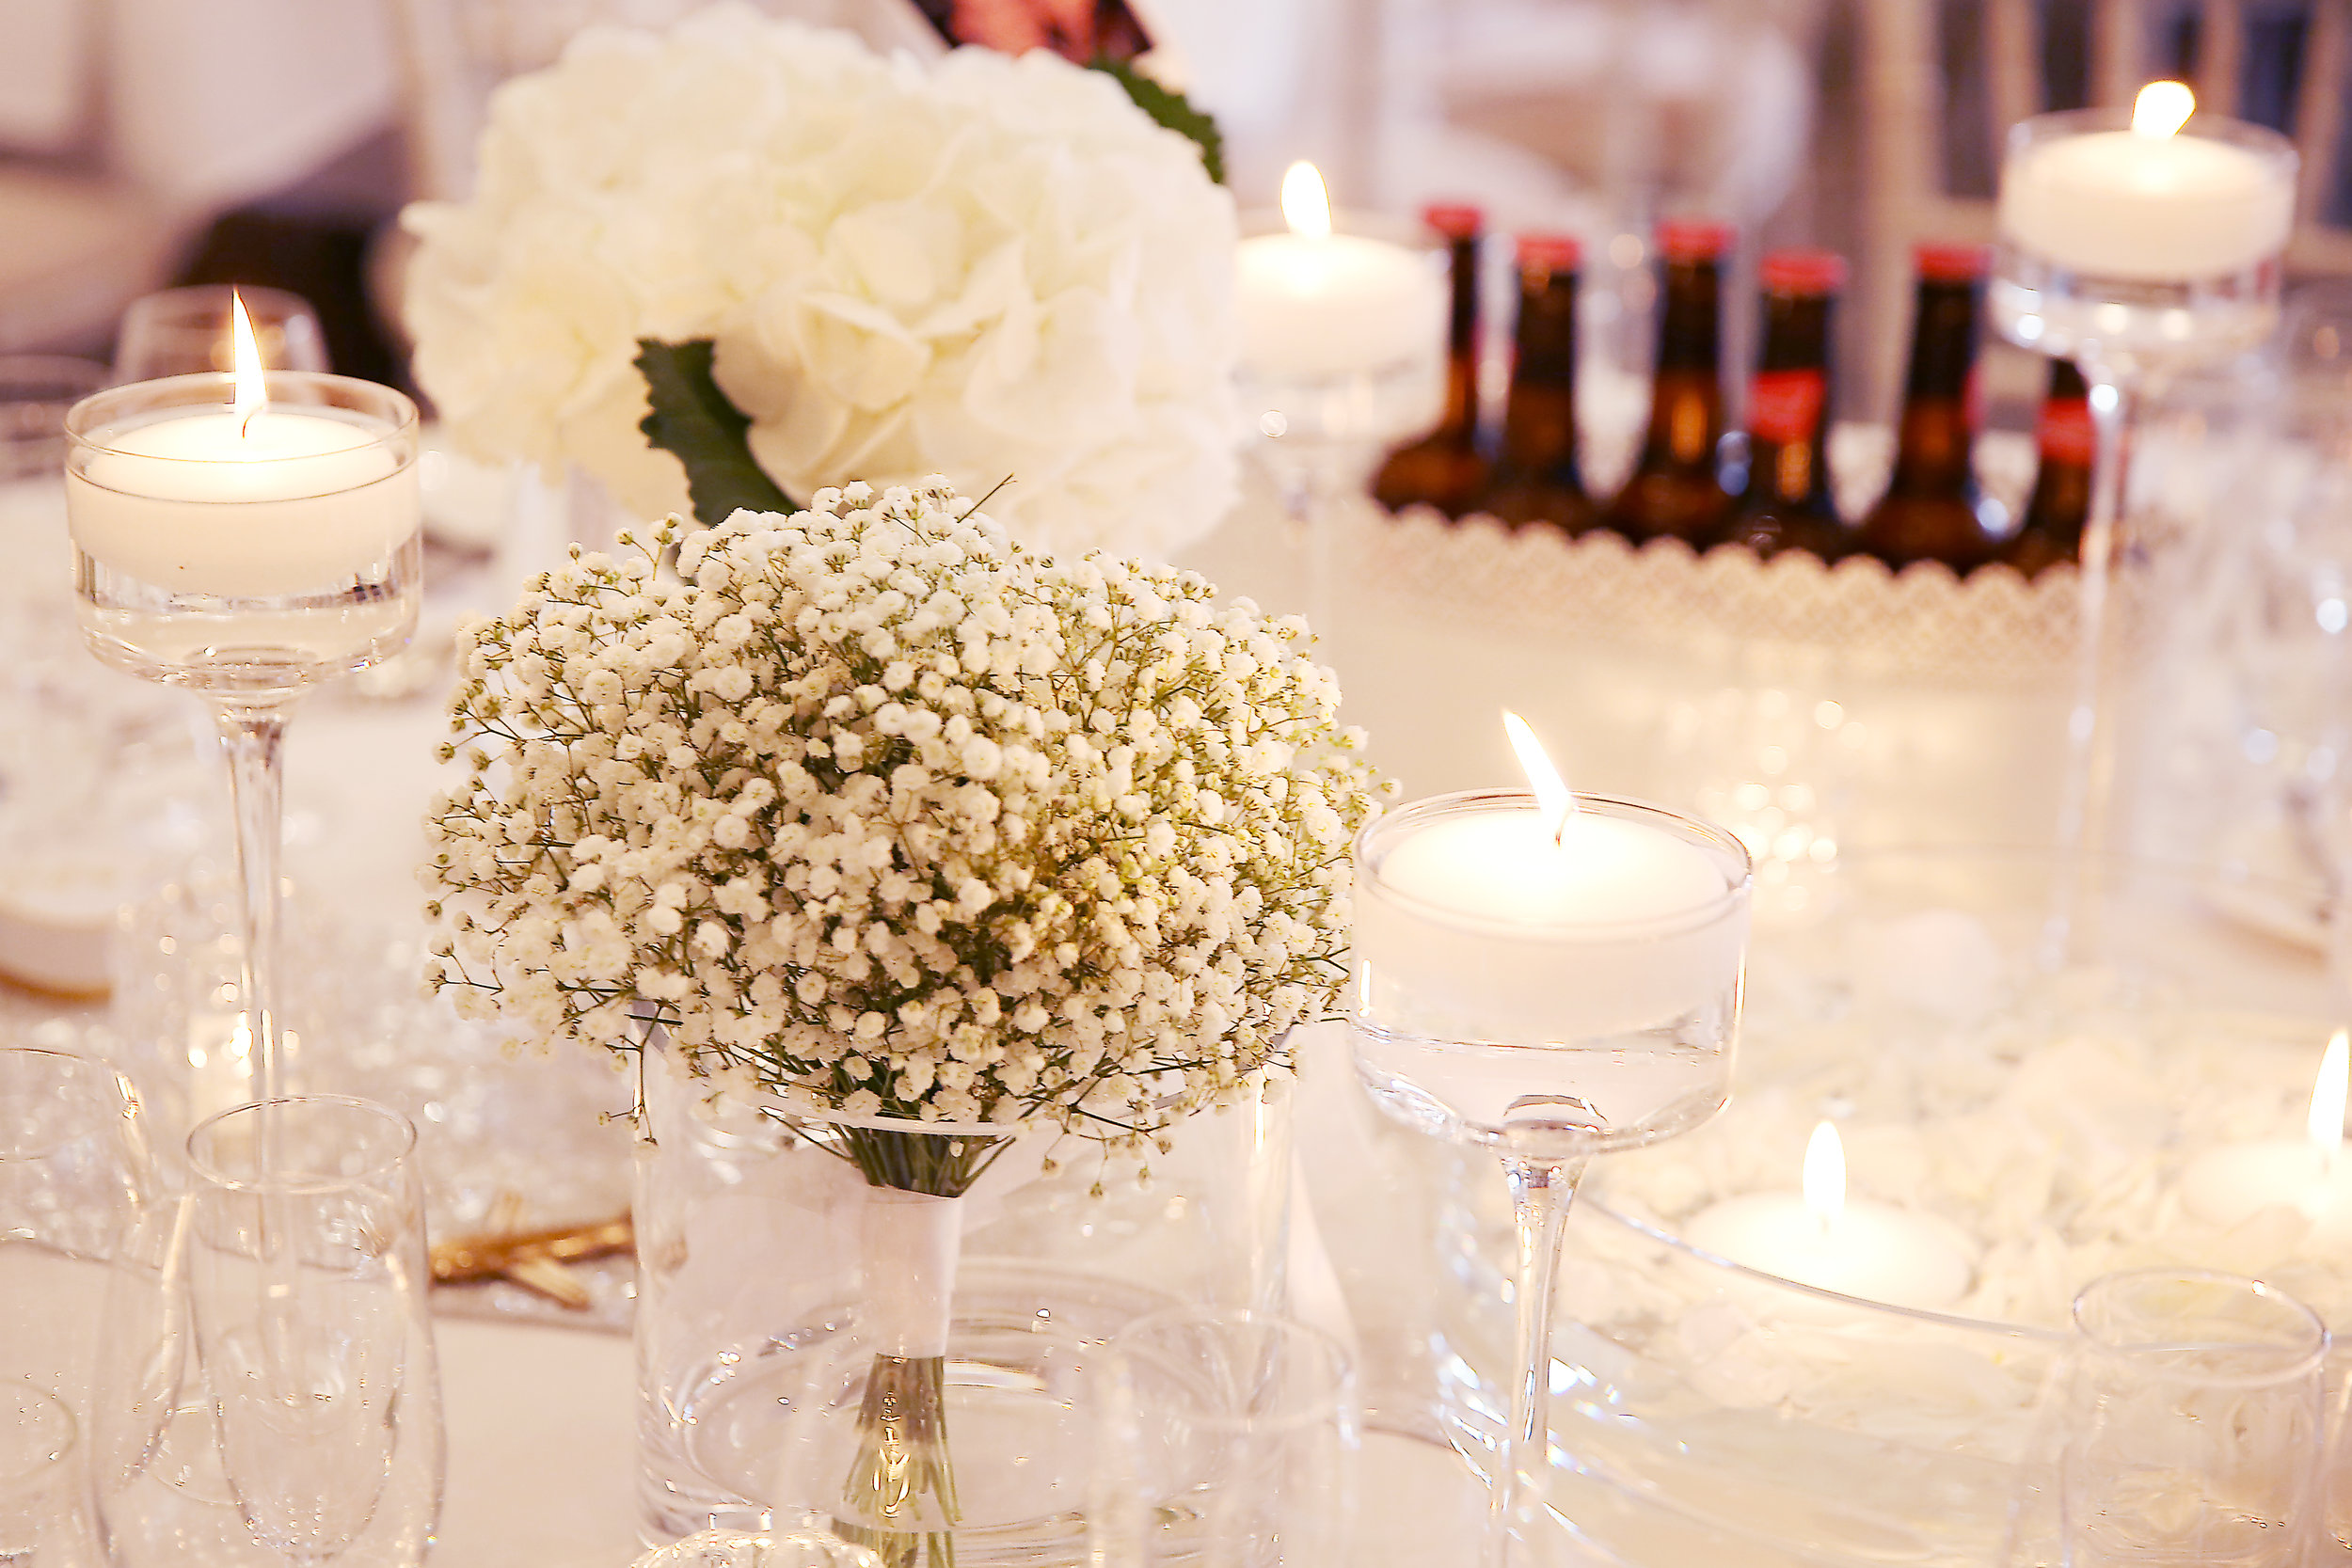 In some cases, where the style and flowers suit, you can use the bouquets on the tables too.